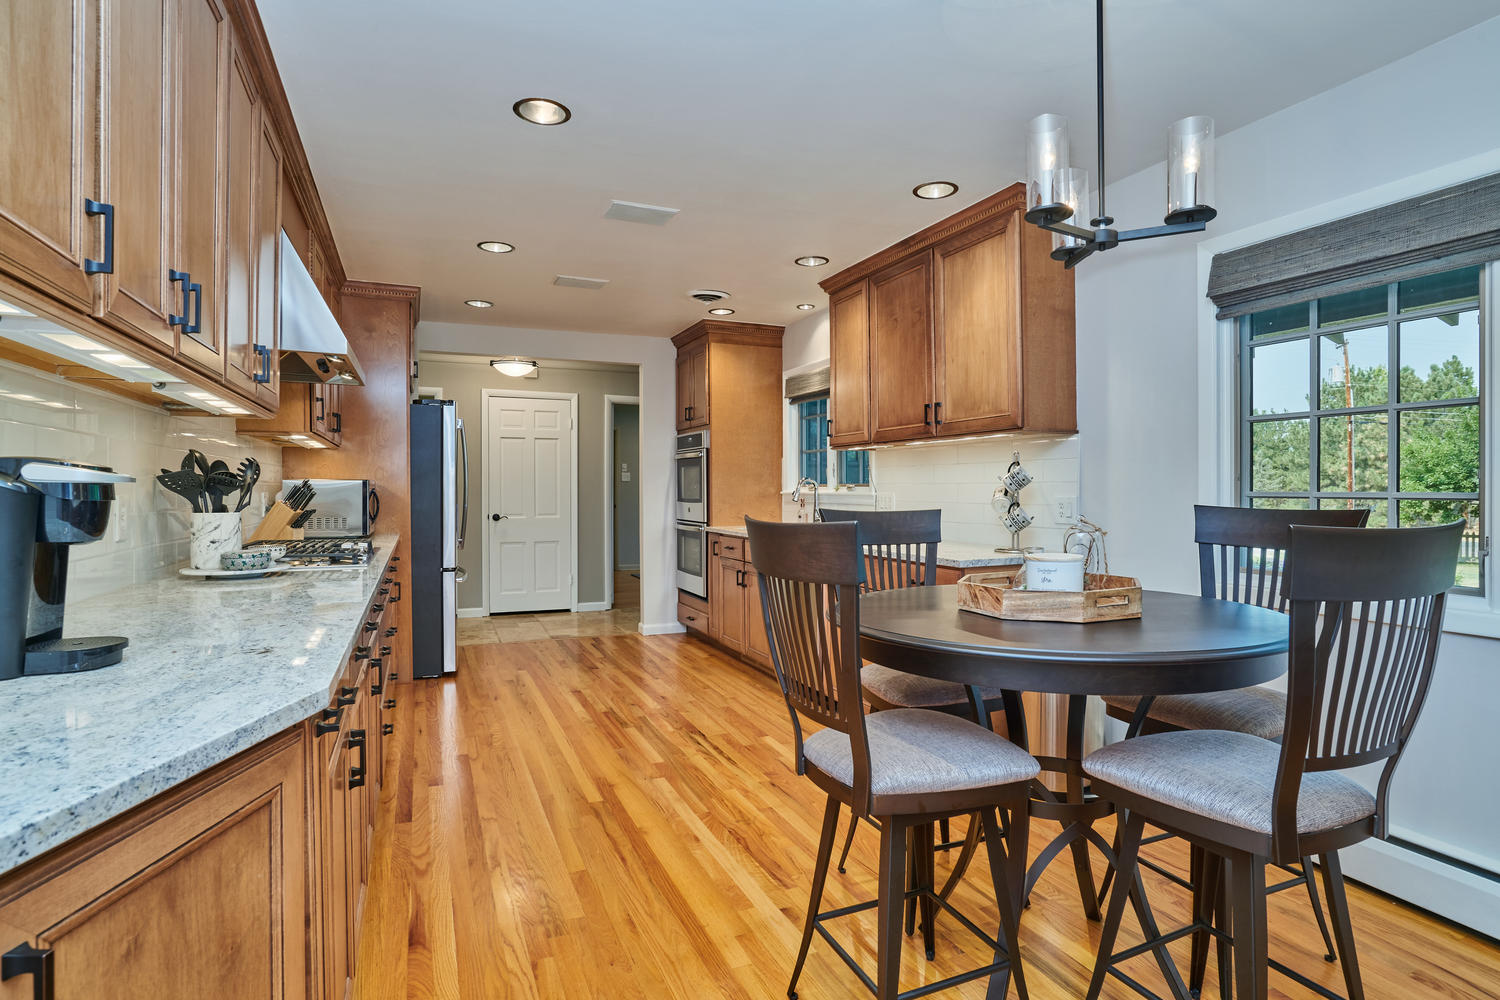 Room for Informal Eat-in Space in Kitchen